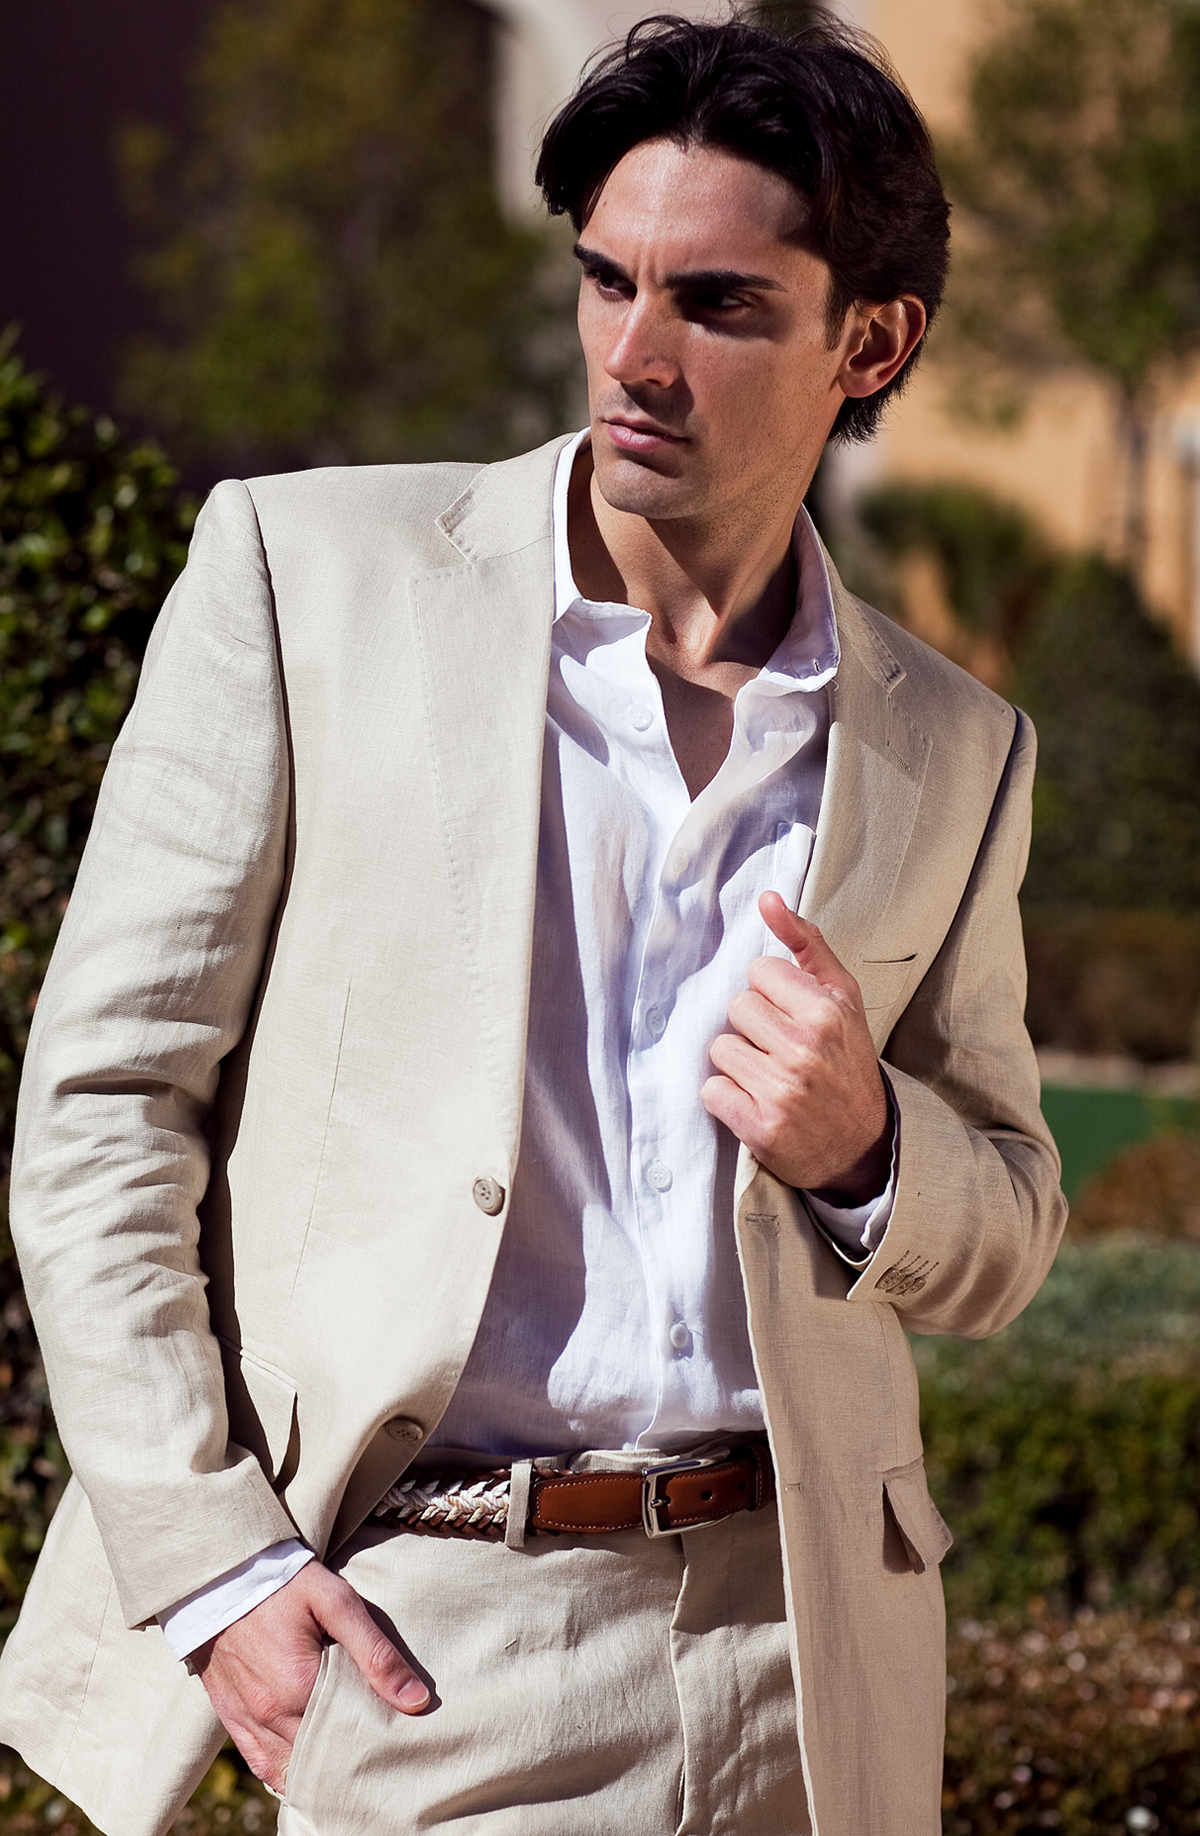 Linen Clothing - Linen Suits - Linen Shirts - Linen Pants - Resort